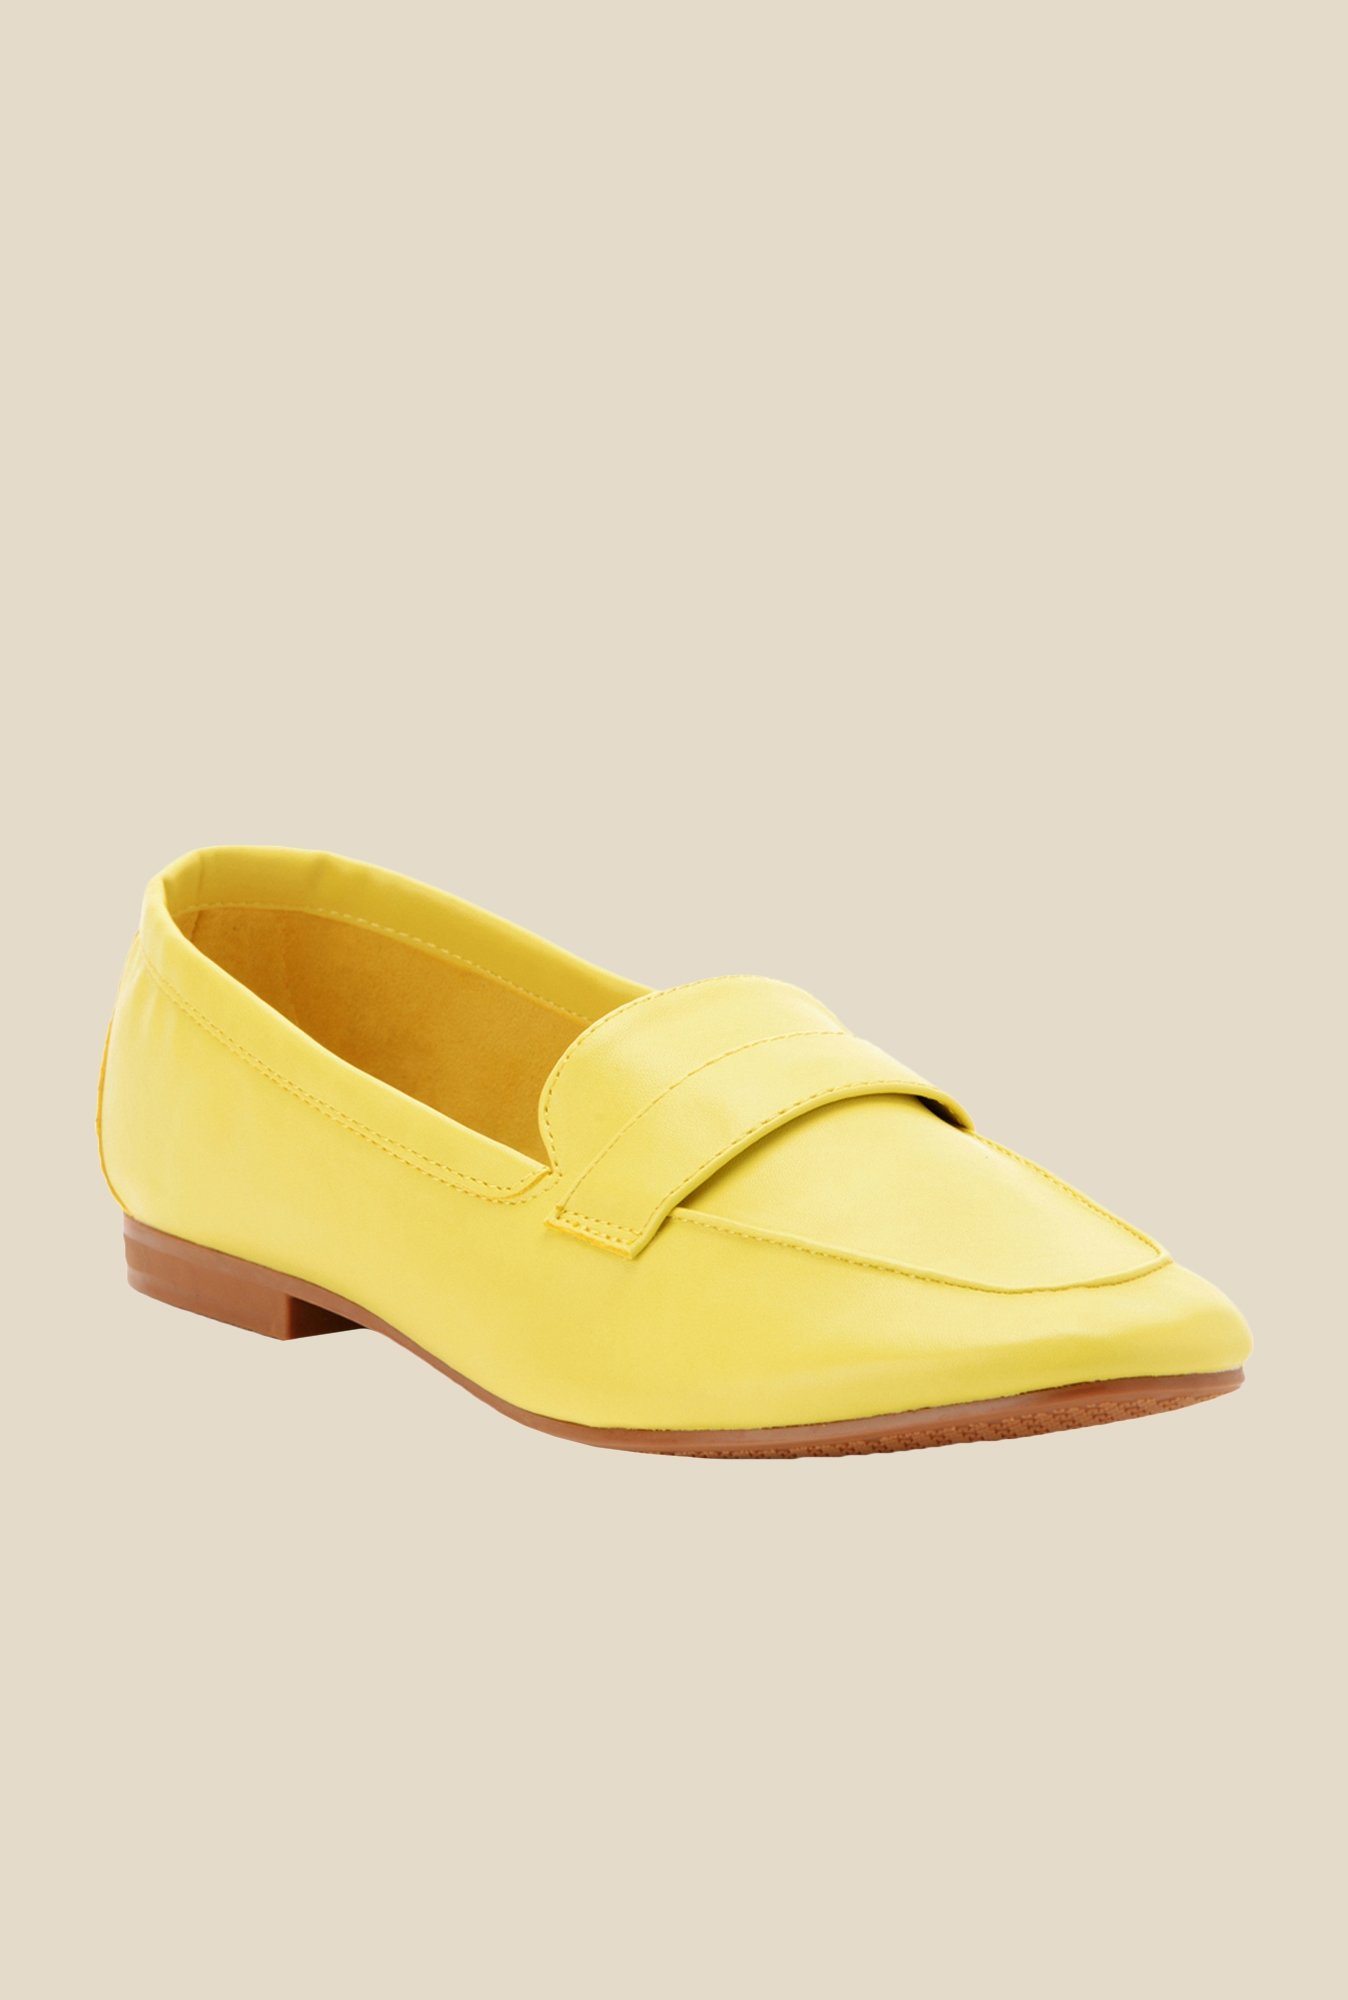 Bruno Manetti Yellow Casual Loafers